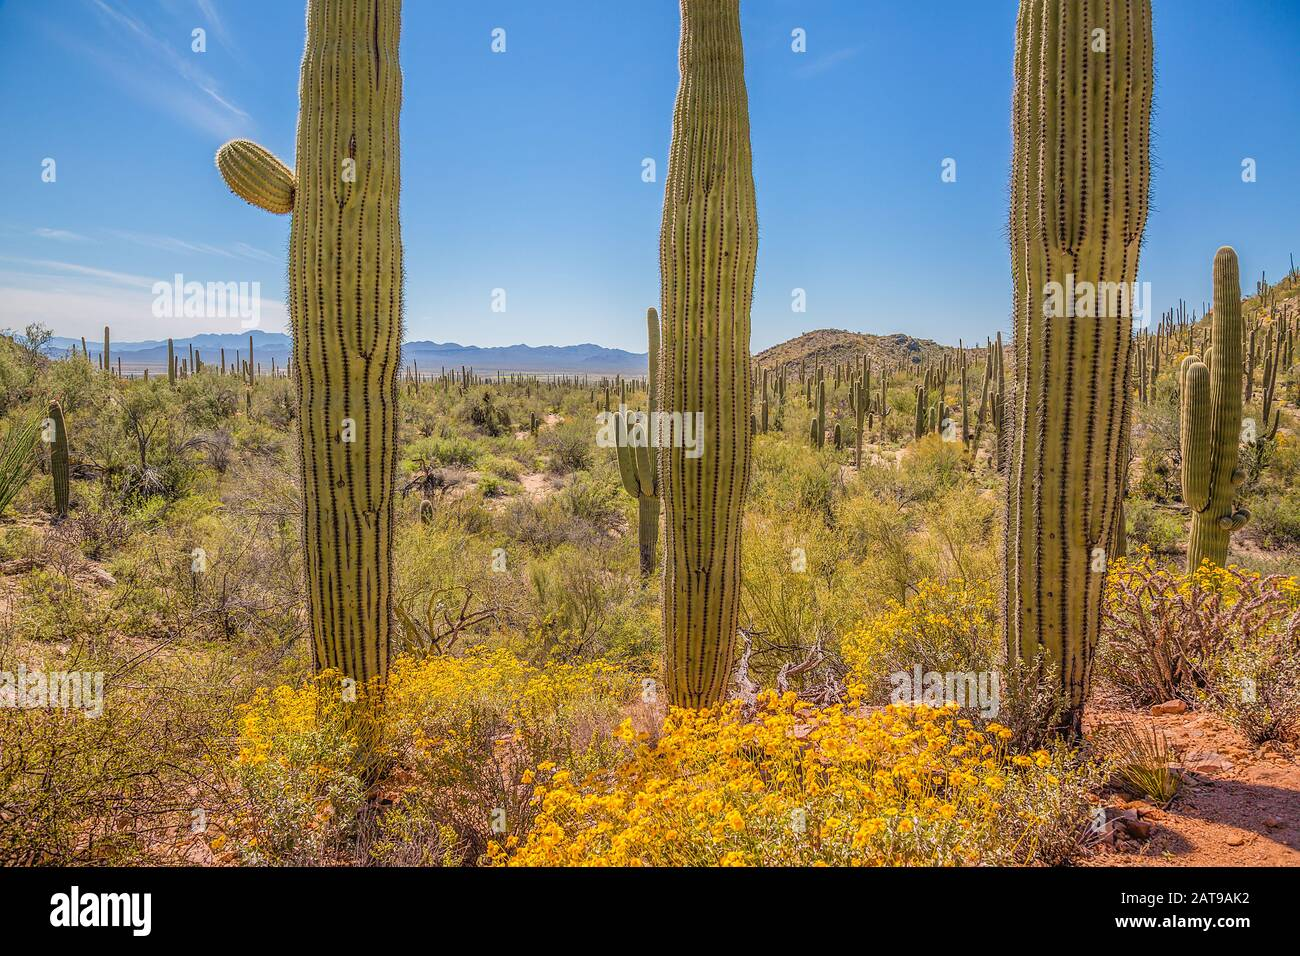 Saguaro National Park forest and byways in Arizona desert under blue sky Stock Photo